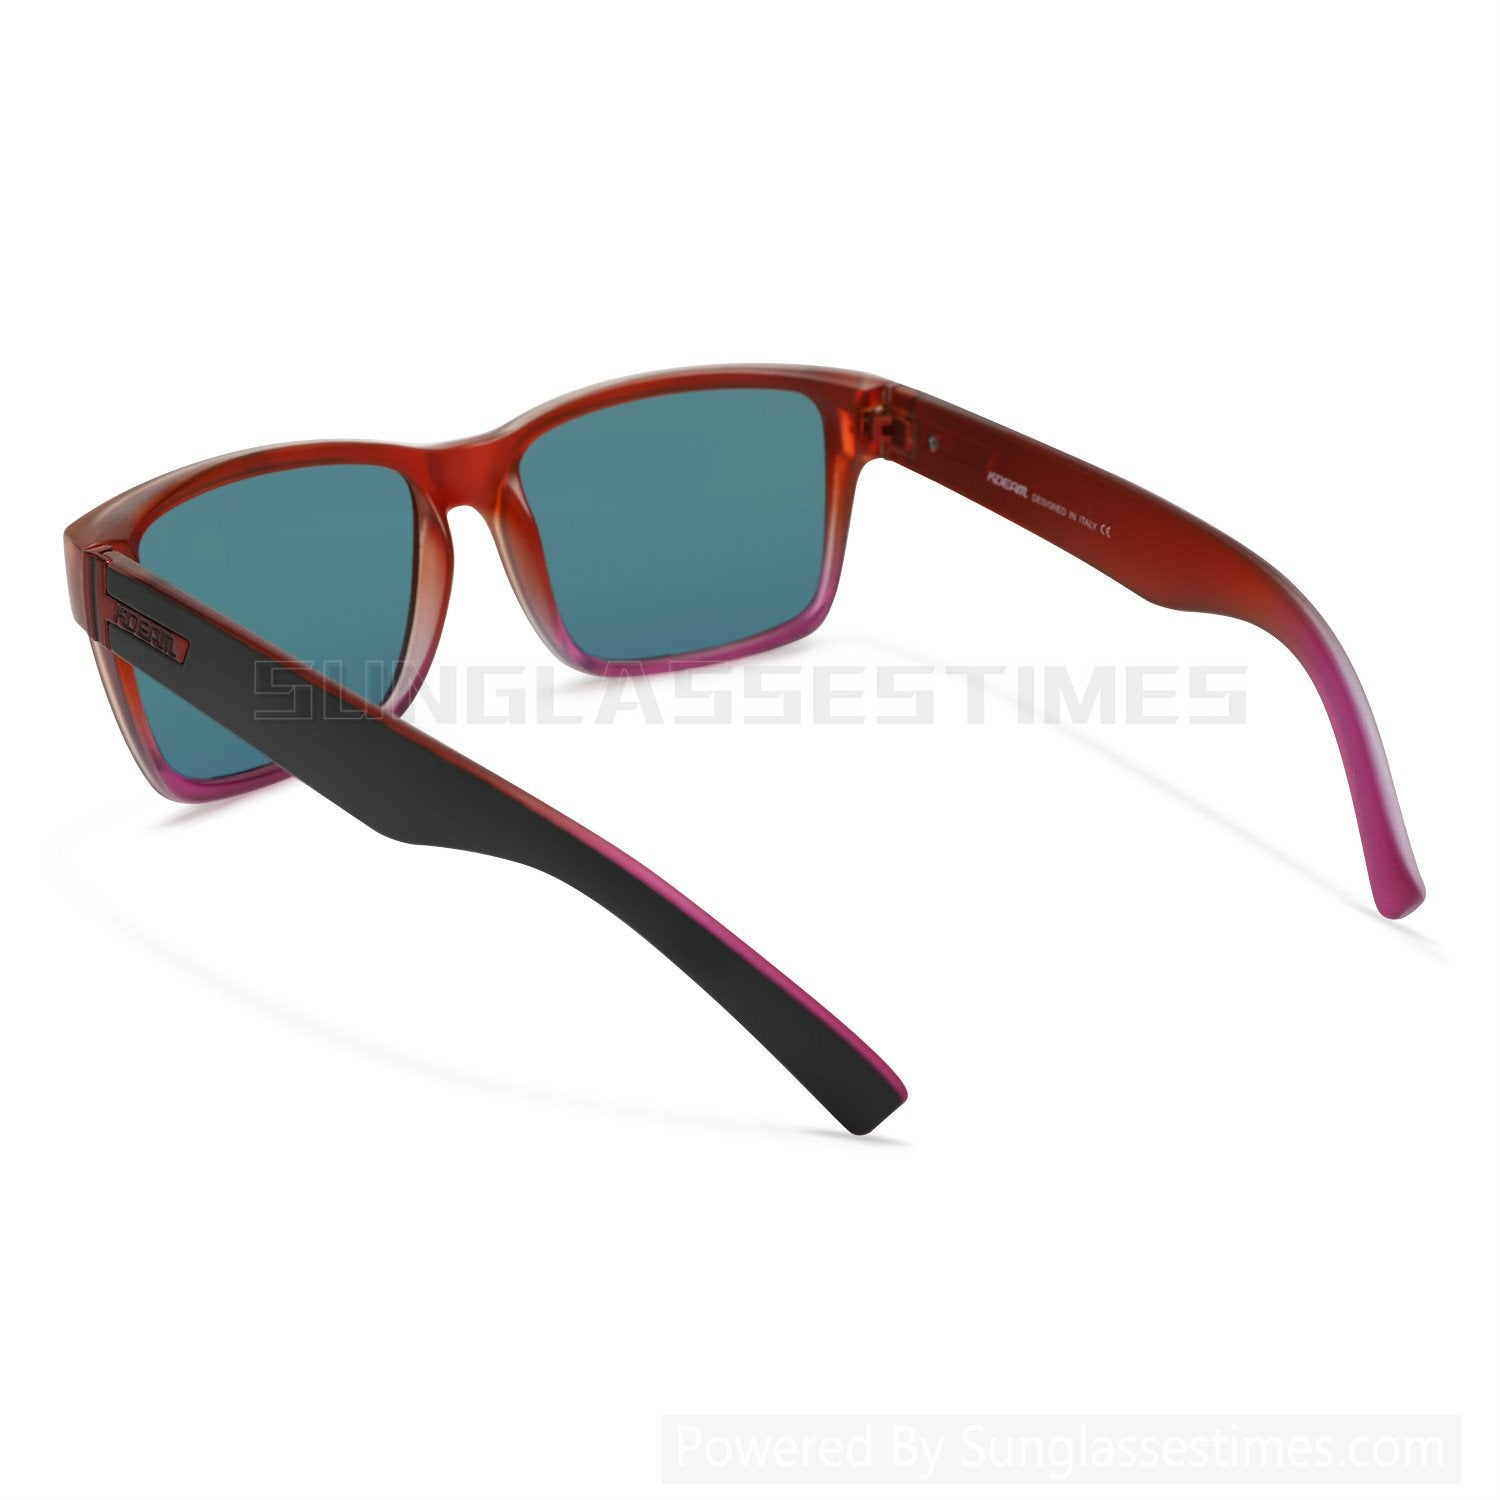 Polarized Sunglasses UV400